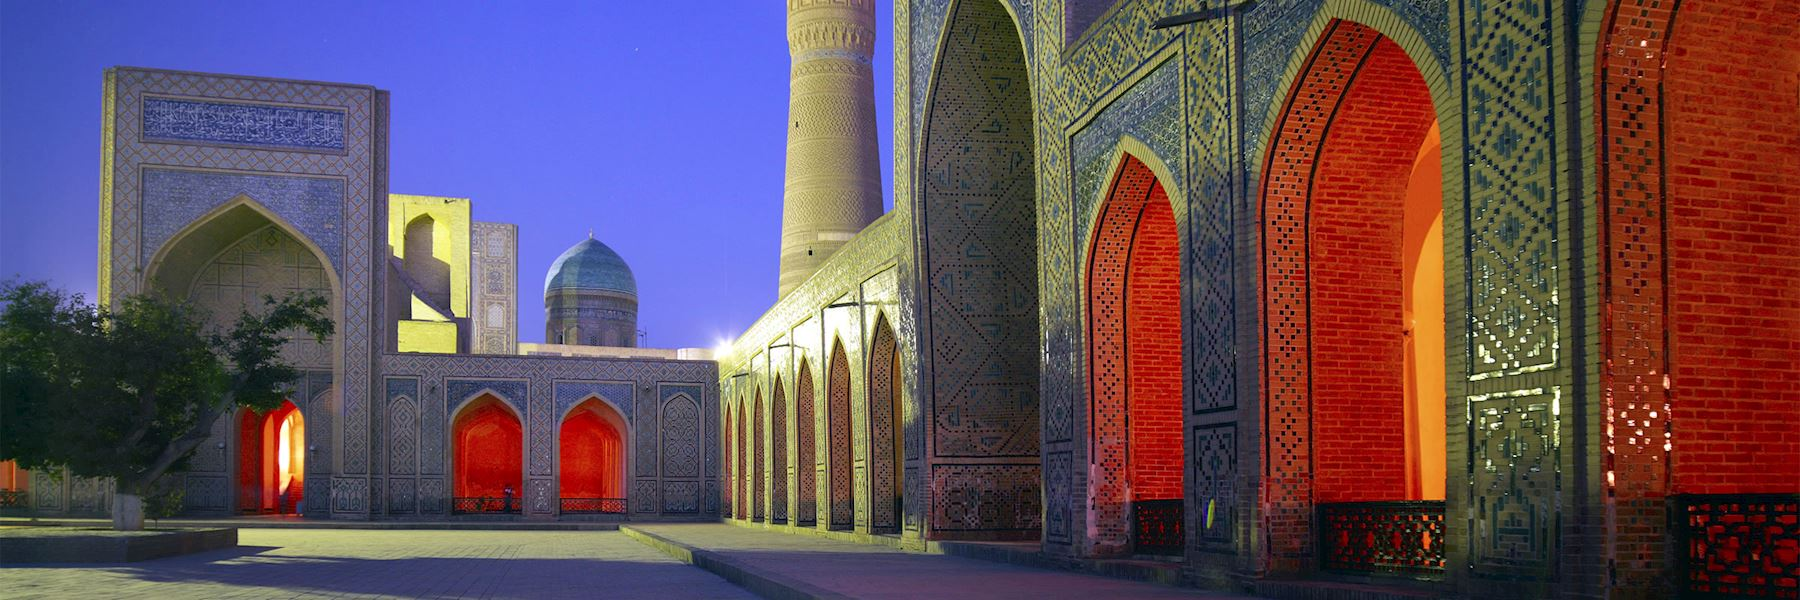 Places To Visit In Uzbekistan Audley Travel